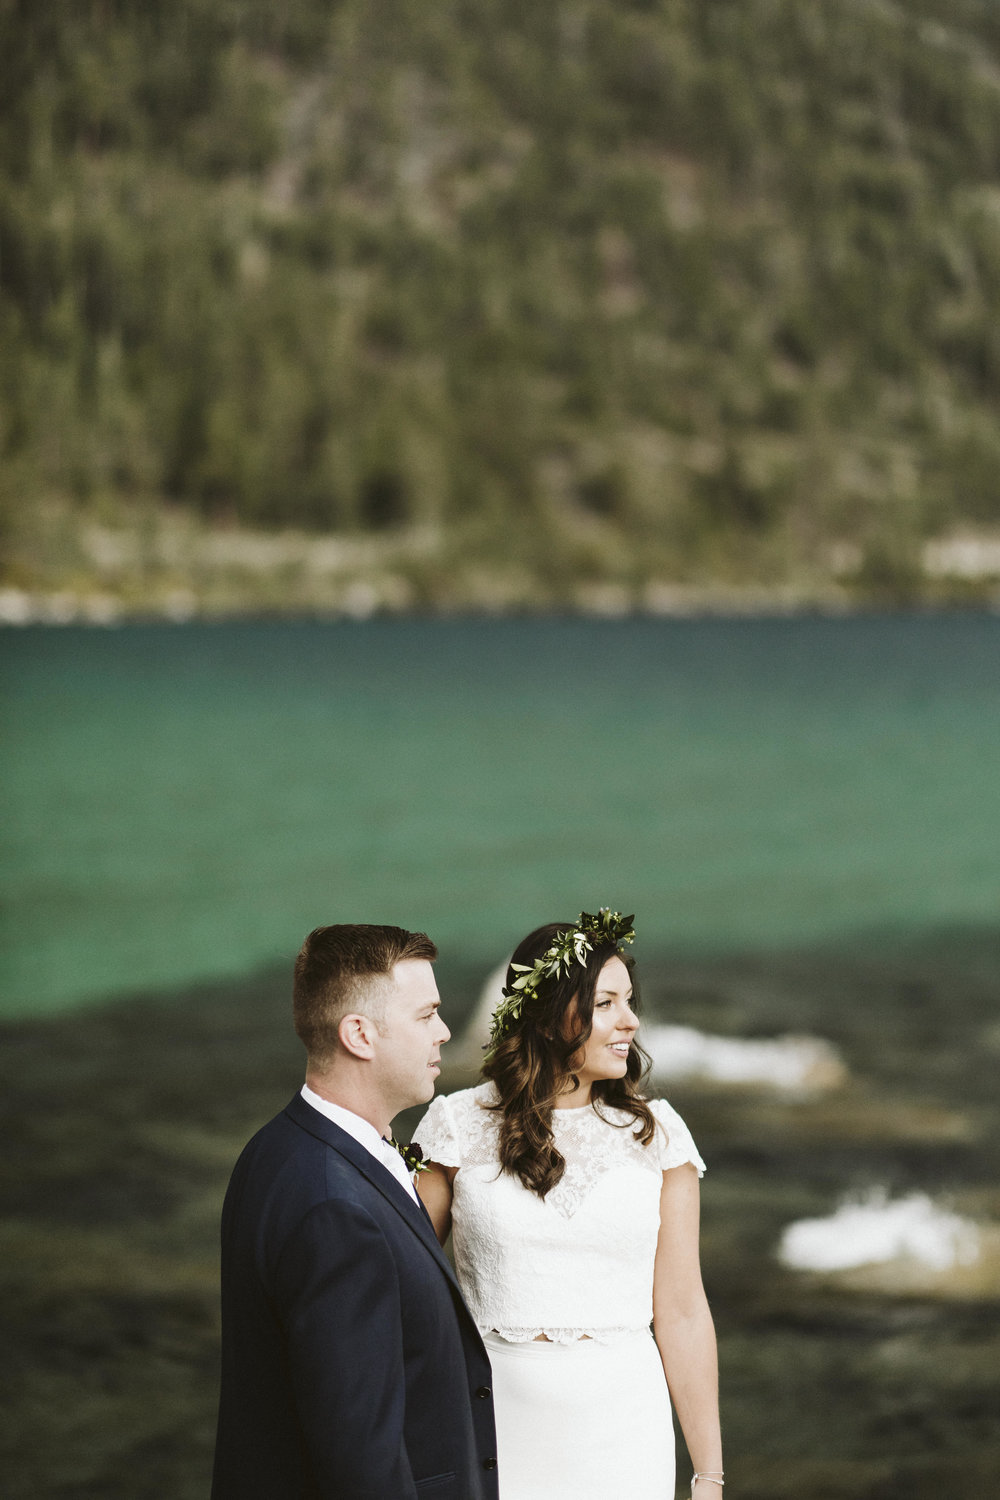 _P8A4510vildphotography-photography-wedding-weddingphotography-tahoewedding-tahoeweddingphotographer-adventurewedding-jake-amy.jpg